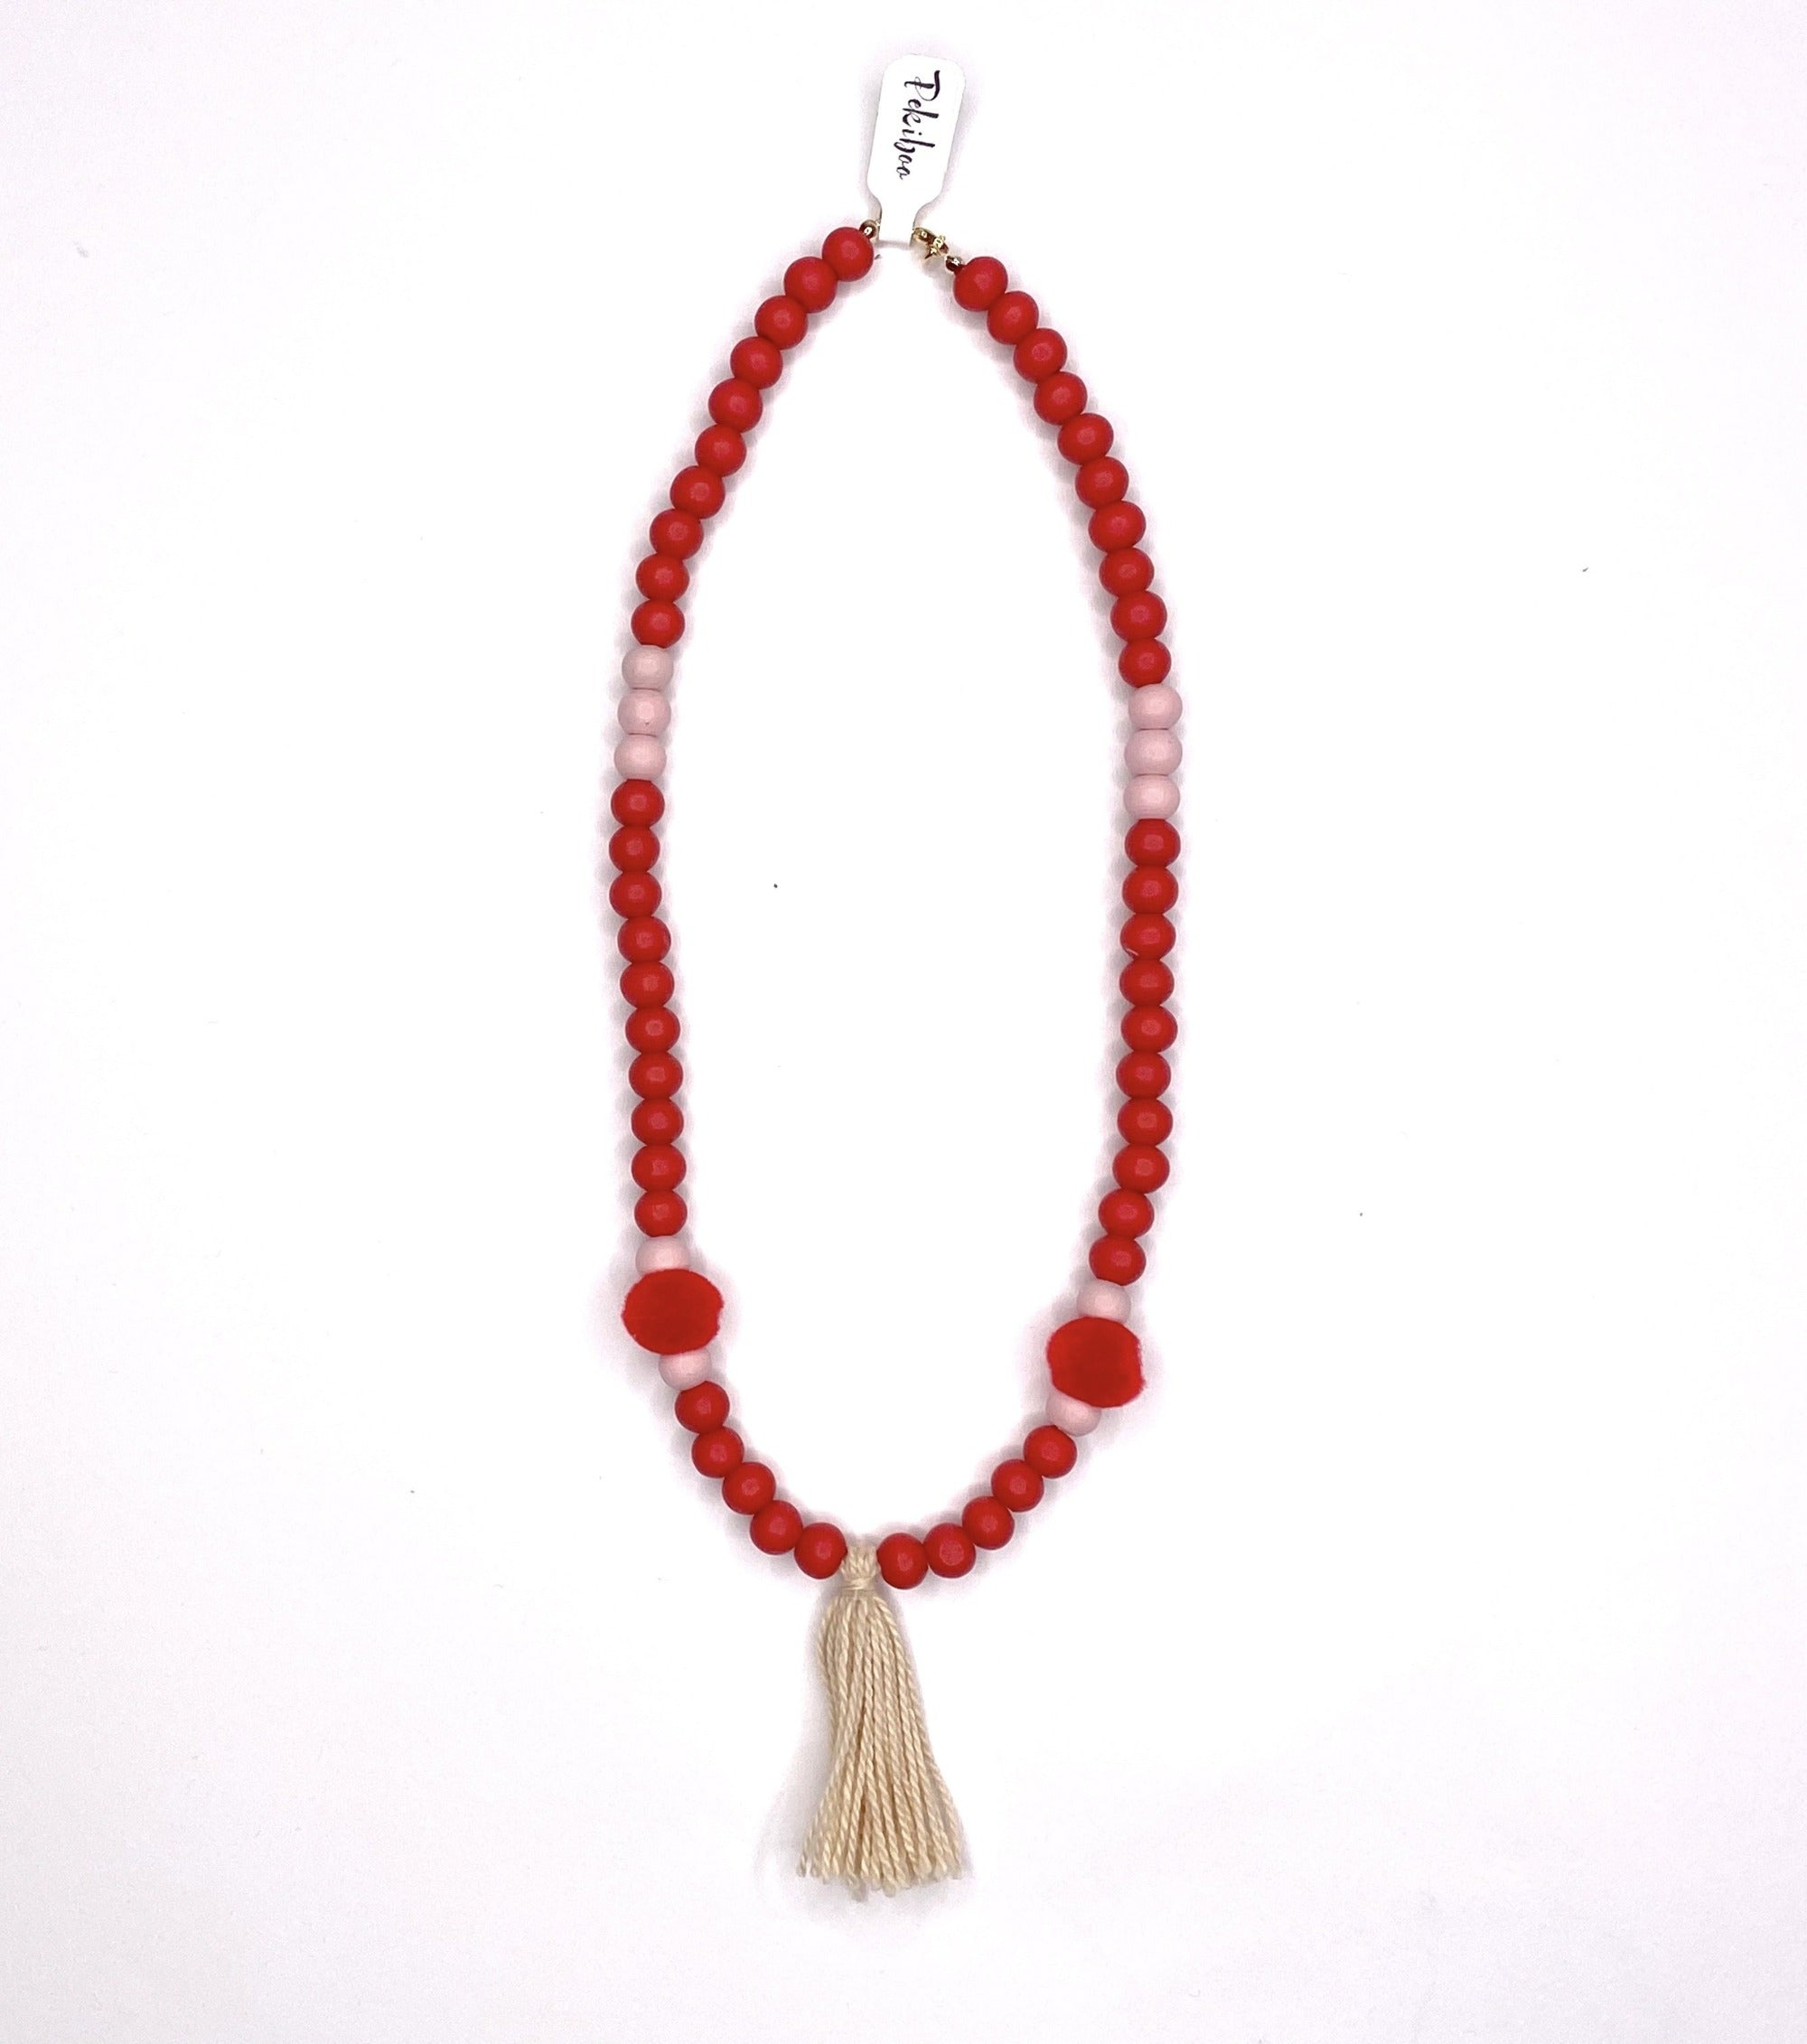 Red necklace and bracelets